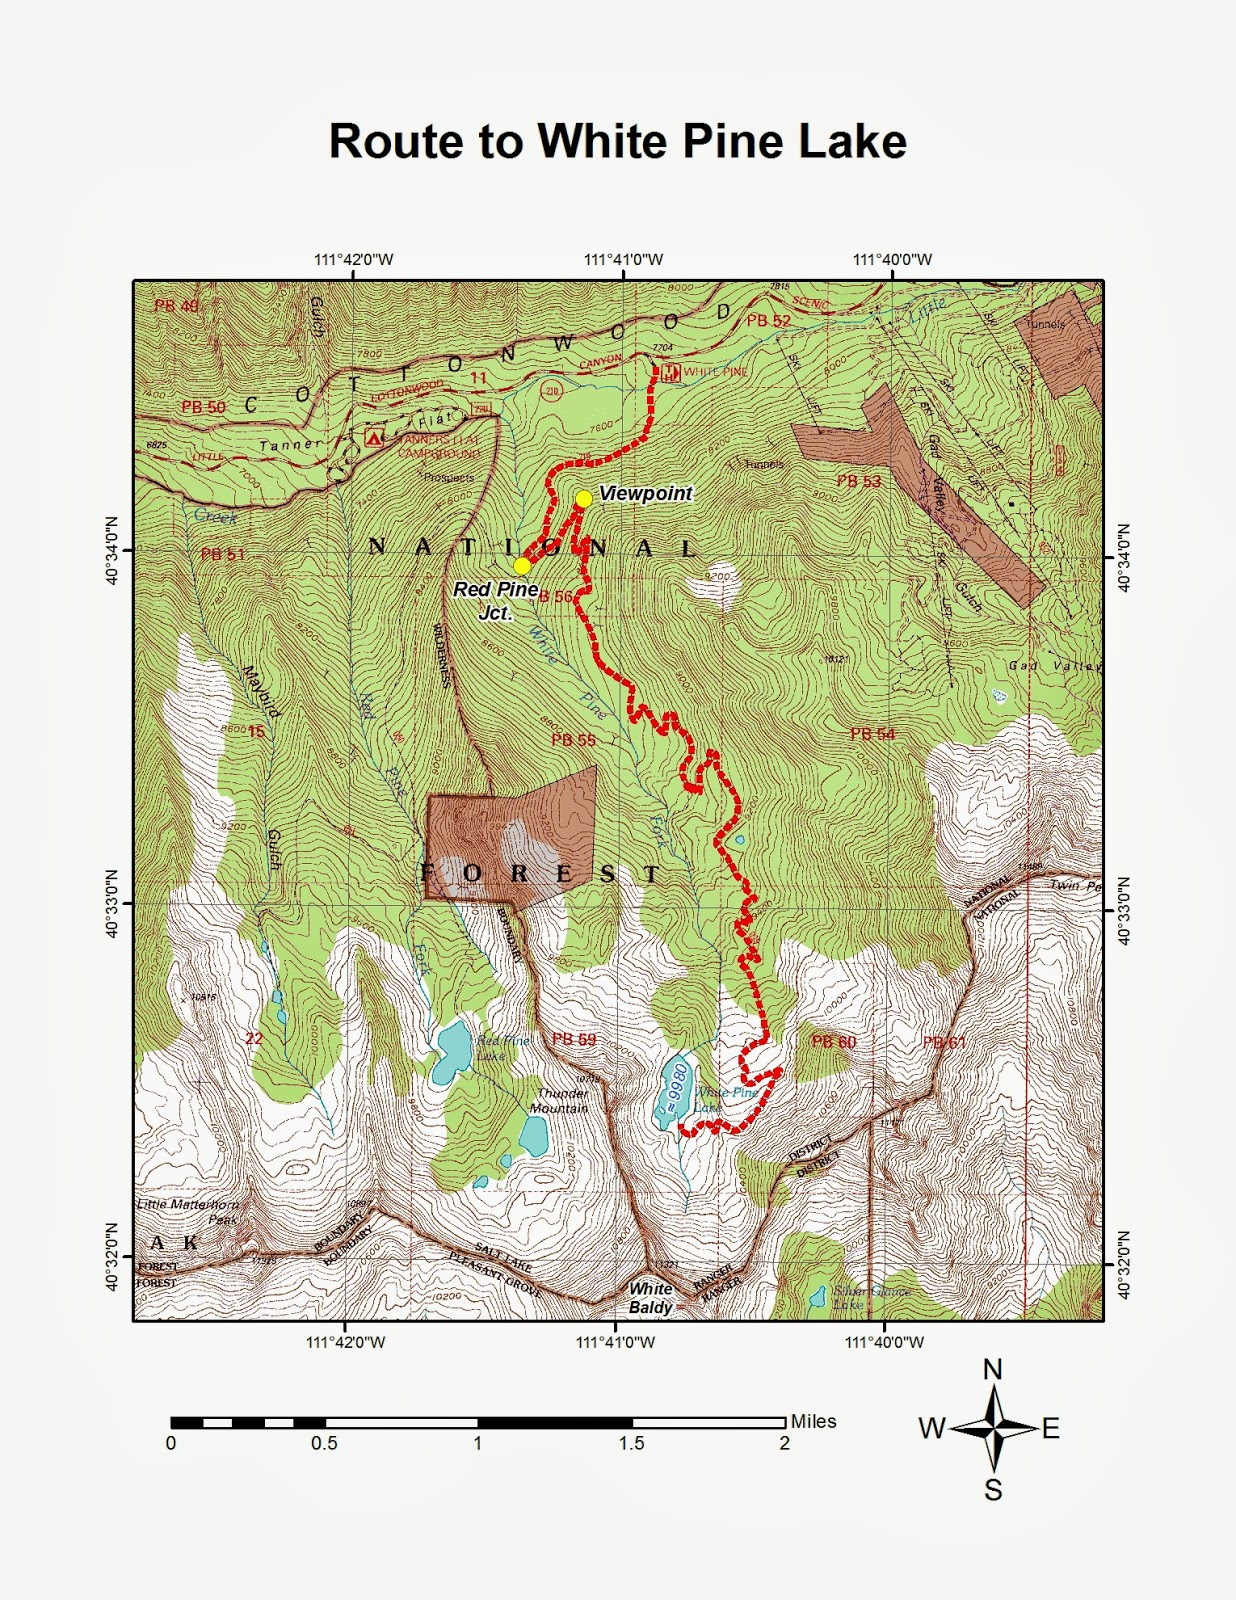 fork drainage was included as part of the wilderness proposal but lobbyists representing nearby ski resorts succeeded in having this area excluded